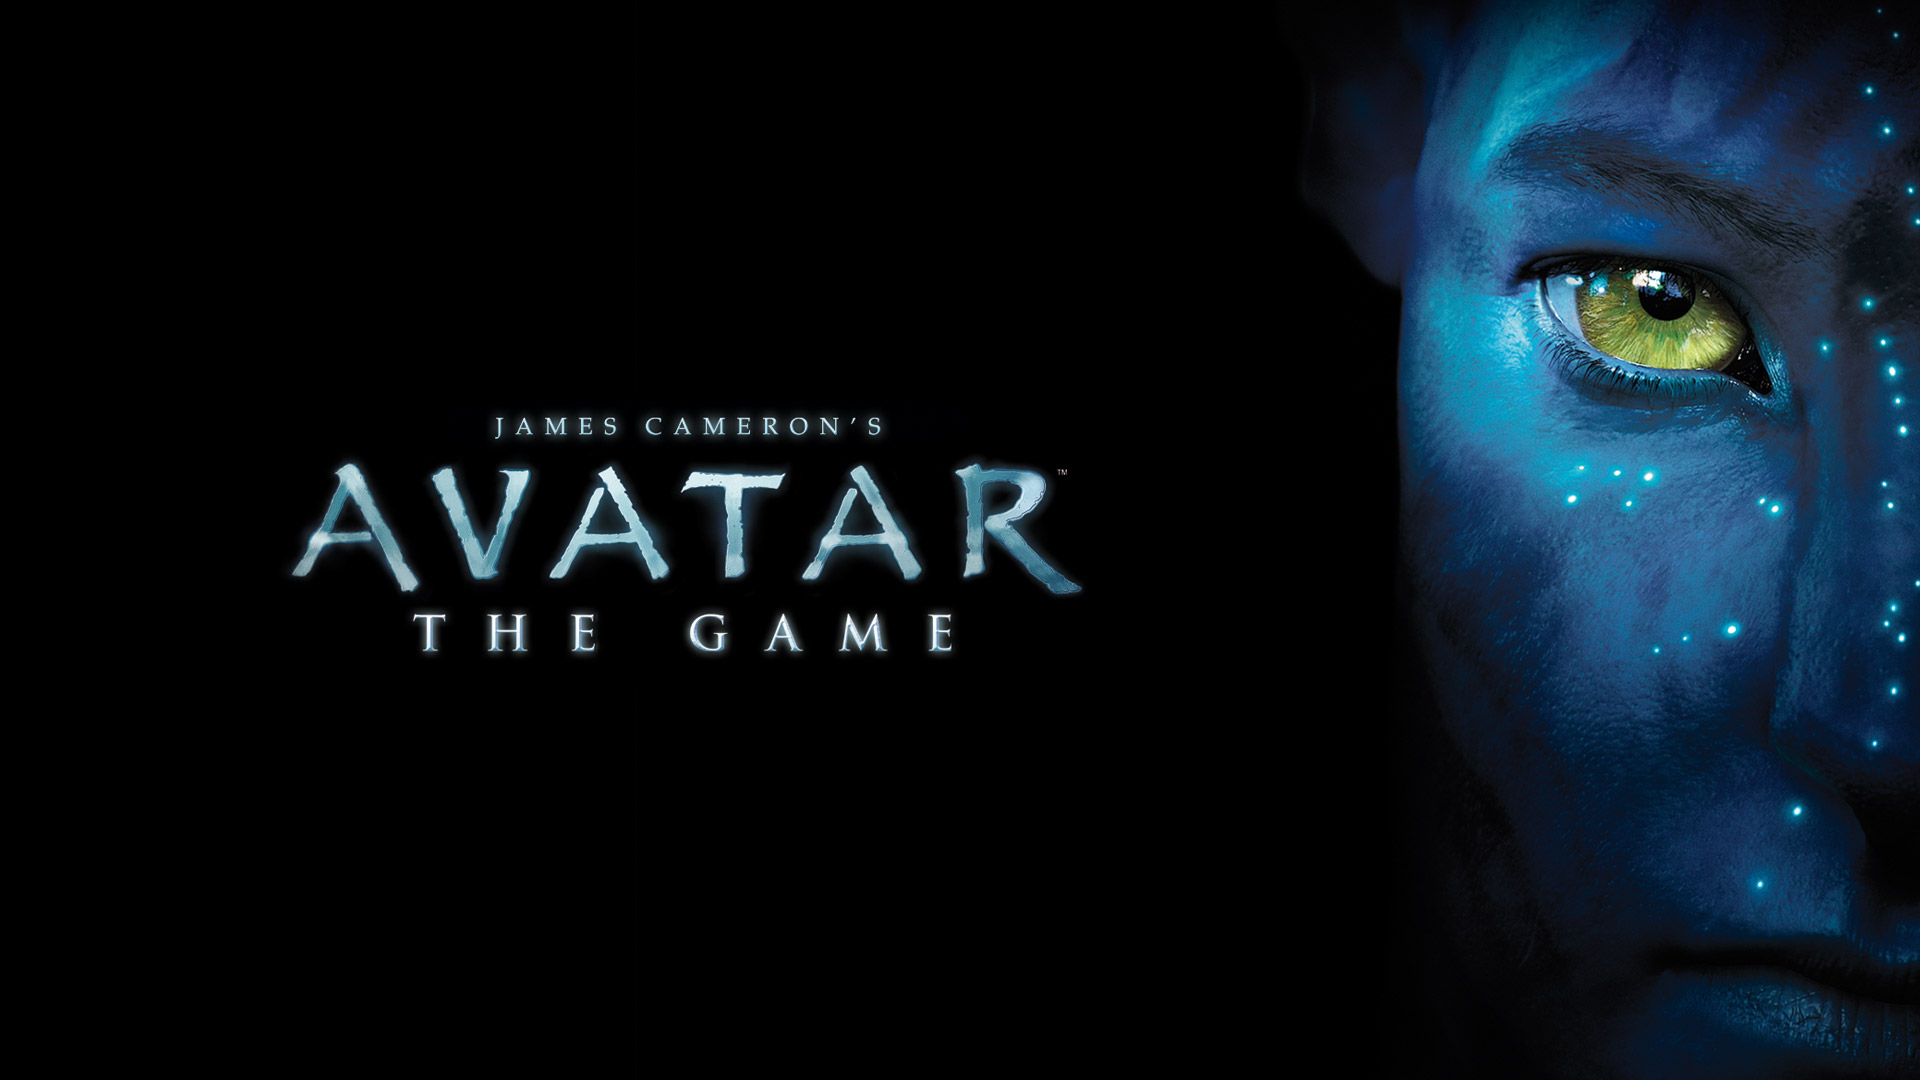 James Cameron's Avatar: The Game Wallpaper in 1920x1080